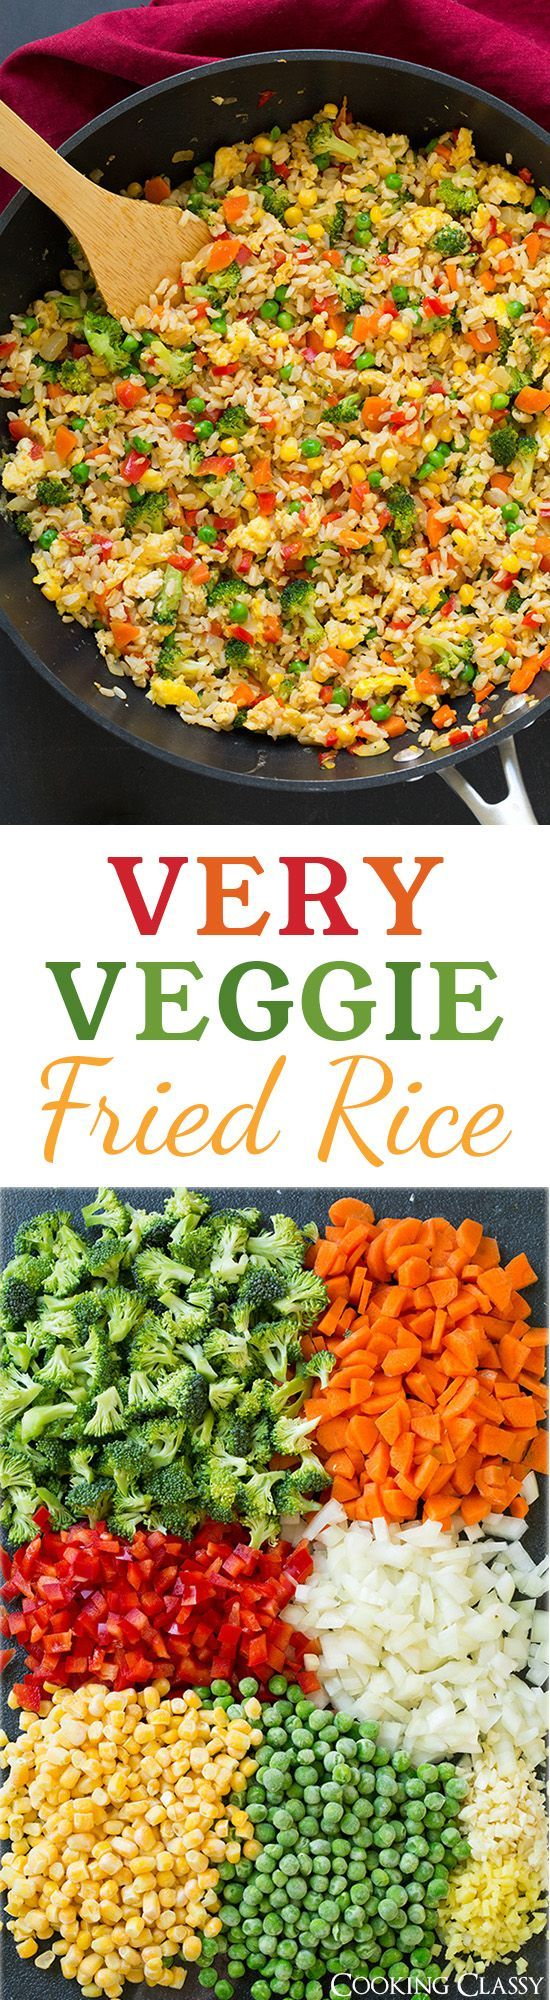 Very Veggie Fried Rice - made healthier with brown rice eggs broccoli red bell pepper carrots peas and corn. Can also add chicken to it.